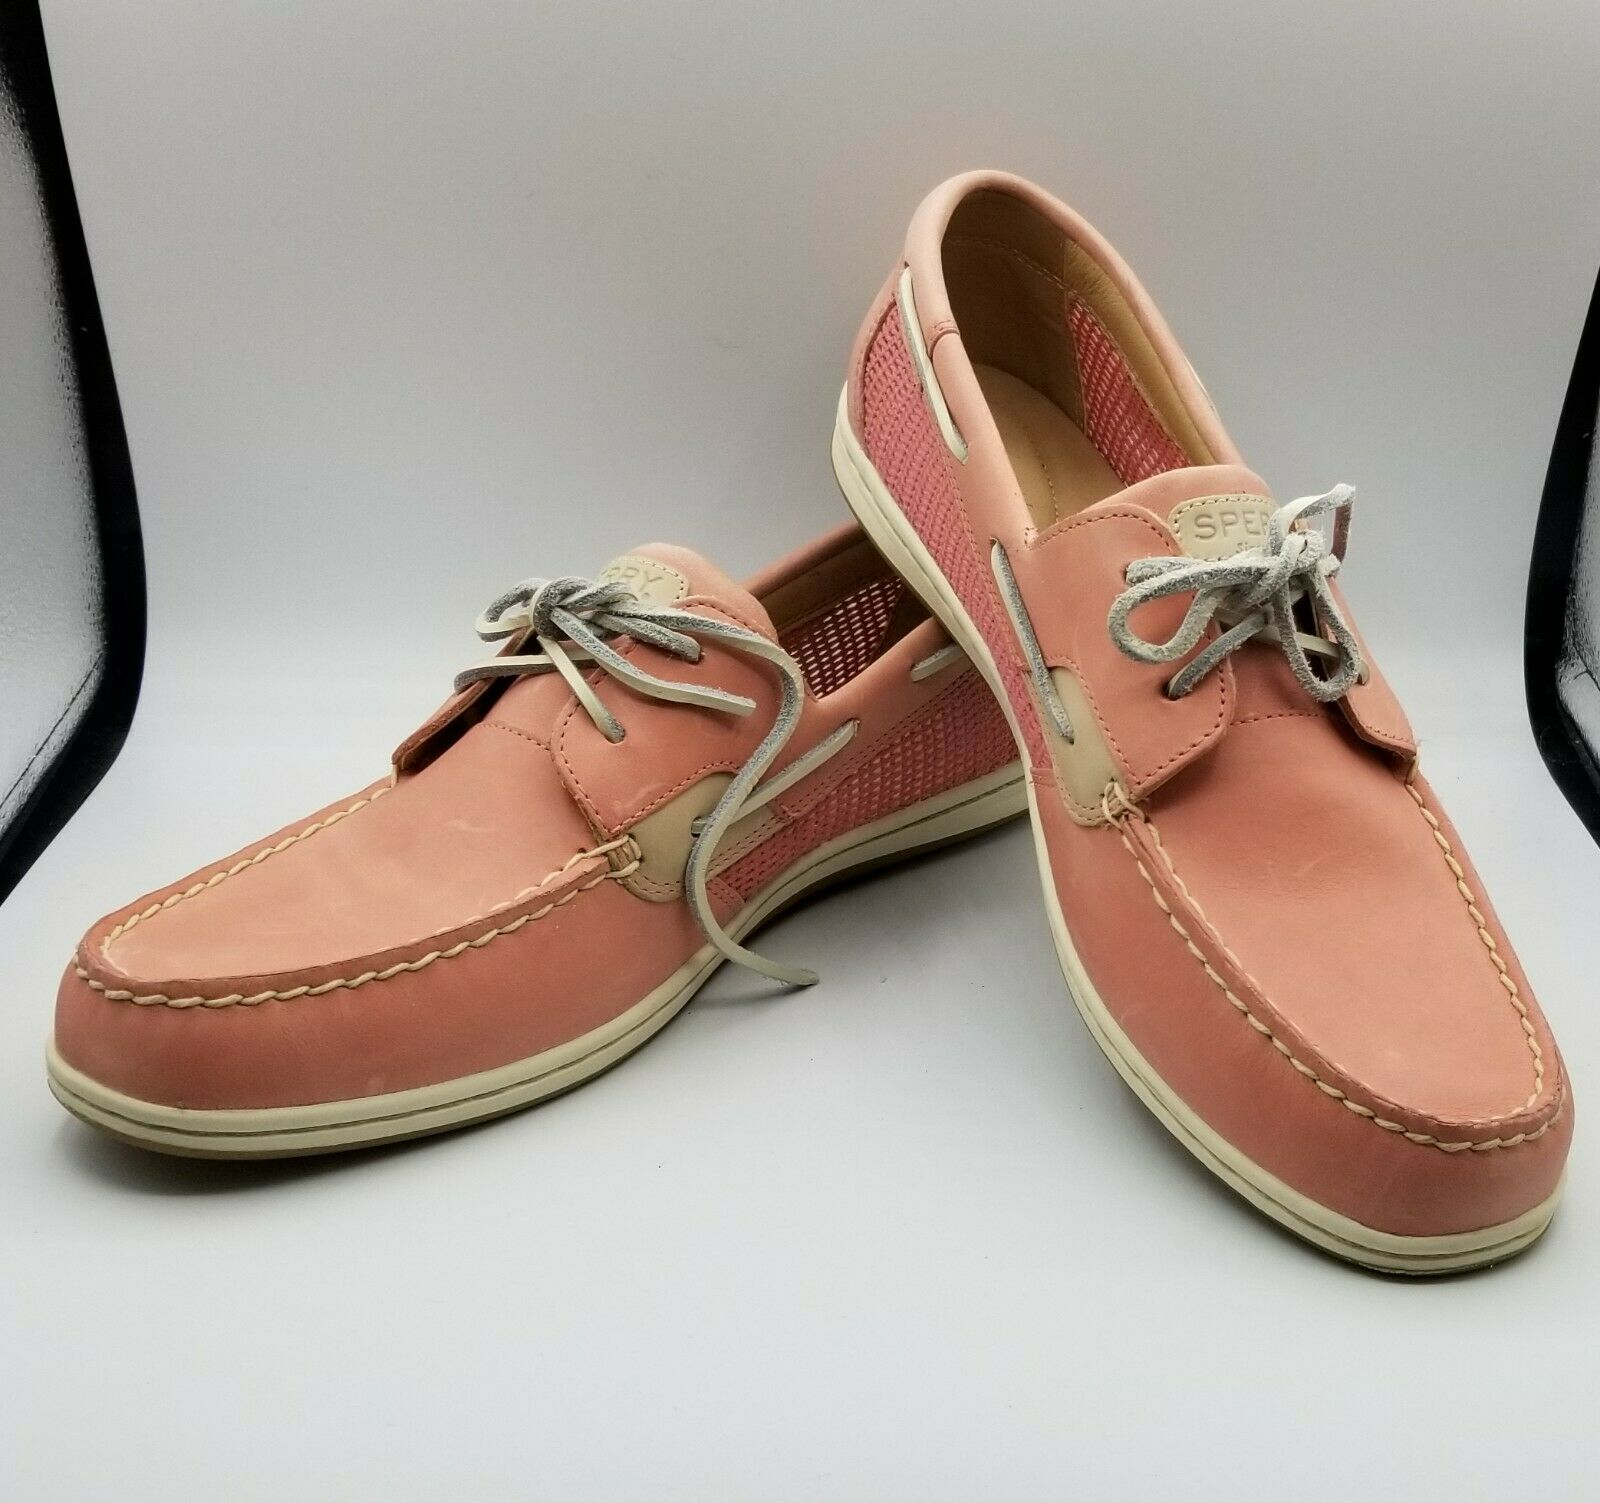 Sperry Koifish Mesh Boat Shoe Pink Women's Red Size 12 M